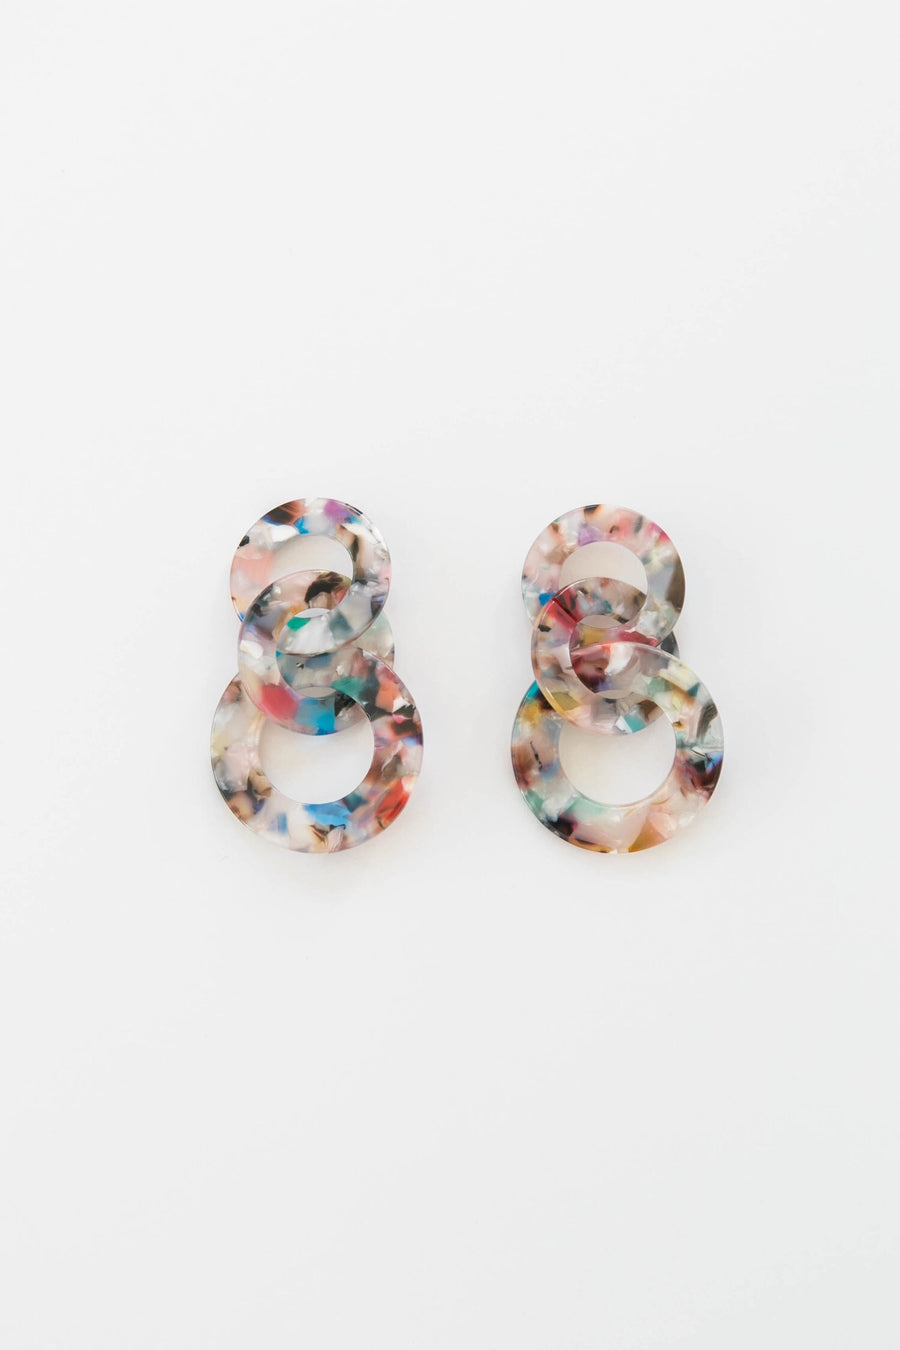 Triple Loop Earrings | Seashell Confetti